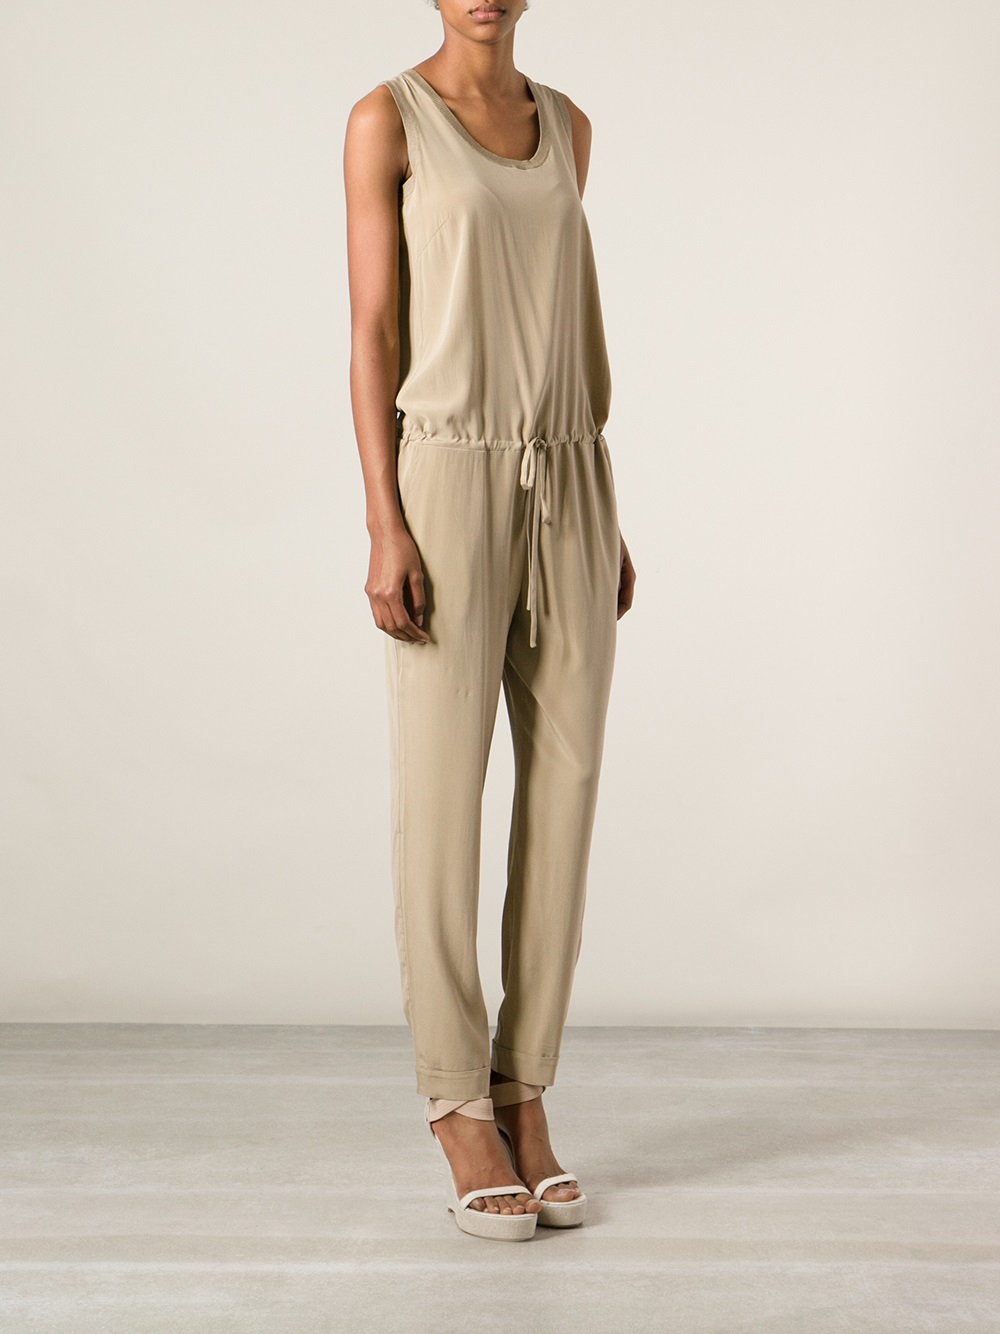 Free shipping and returns on Beige Jumpsuits & Rompers at 440v.cf